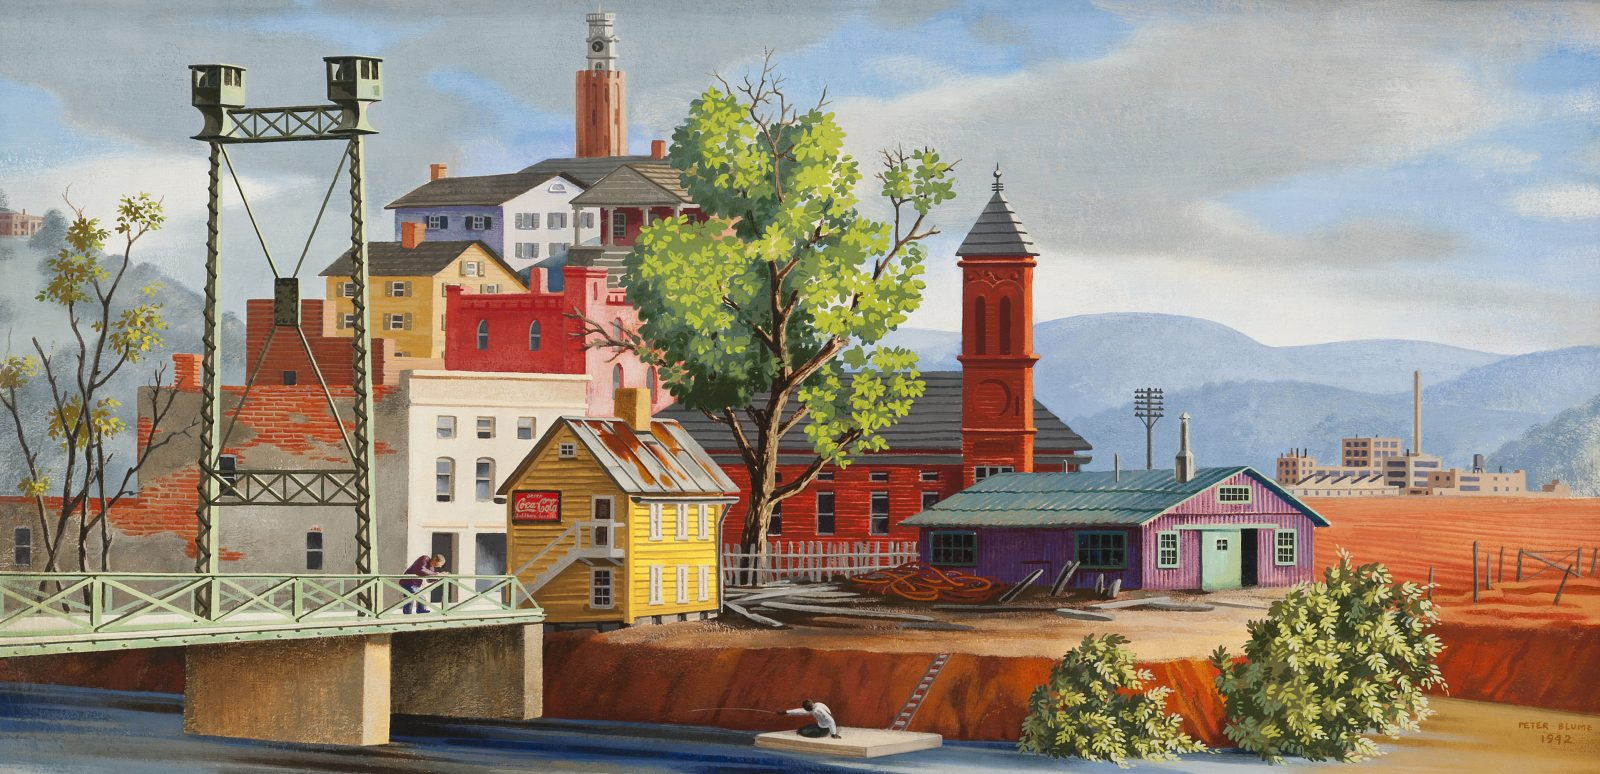 In Peter Blume's work, local landmarks and a towering iron drawbridge are shown in the mountains